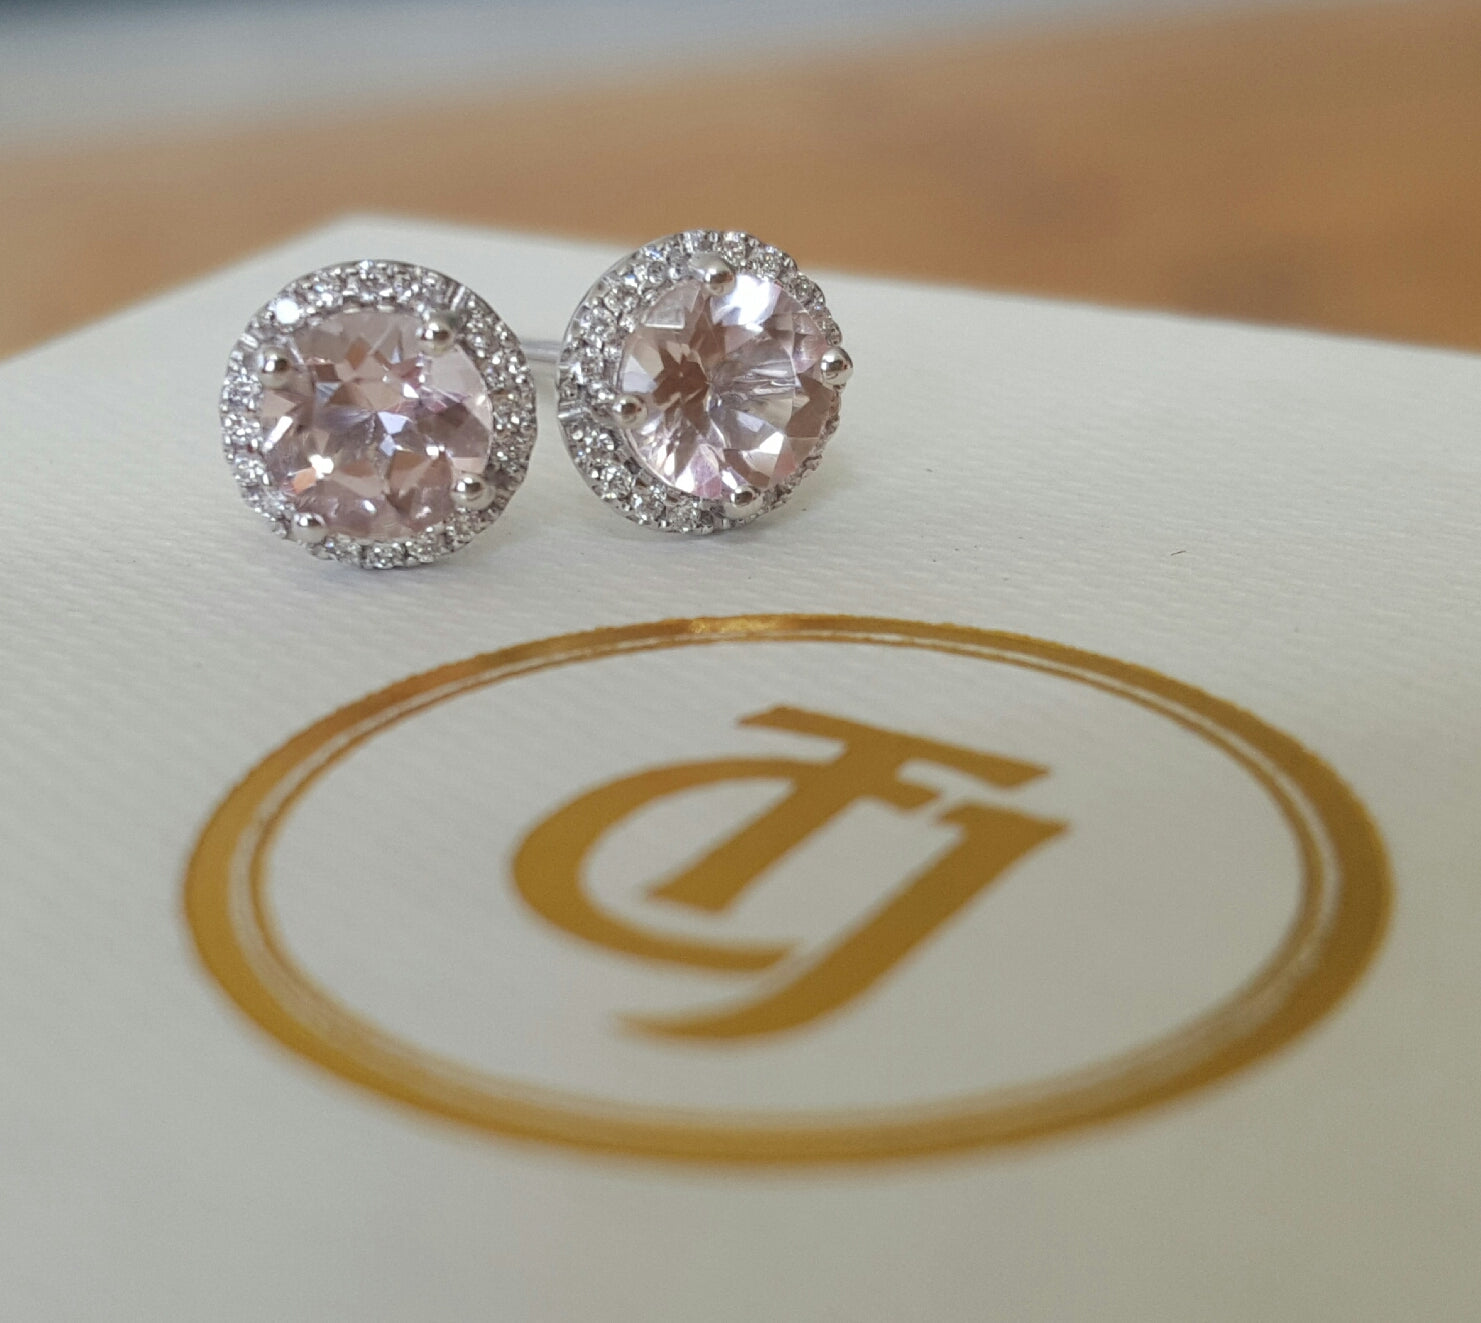 0.80tcw Morganite & 0.10tcw Diamond Stud Earrings in 18k White Gold by CTJ